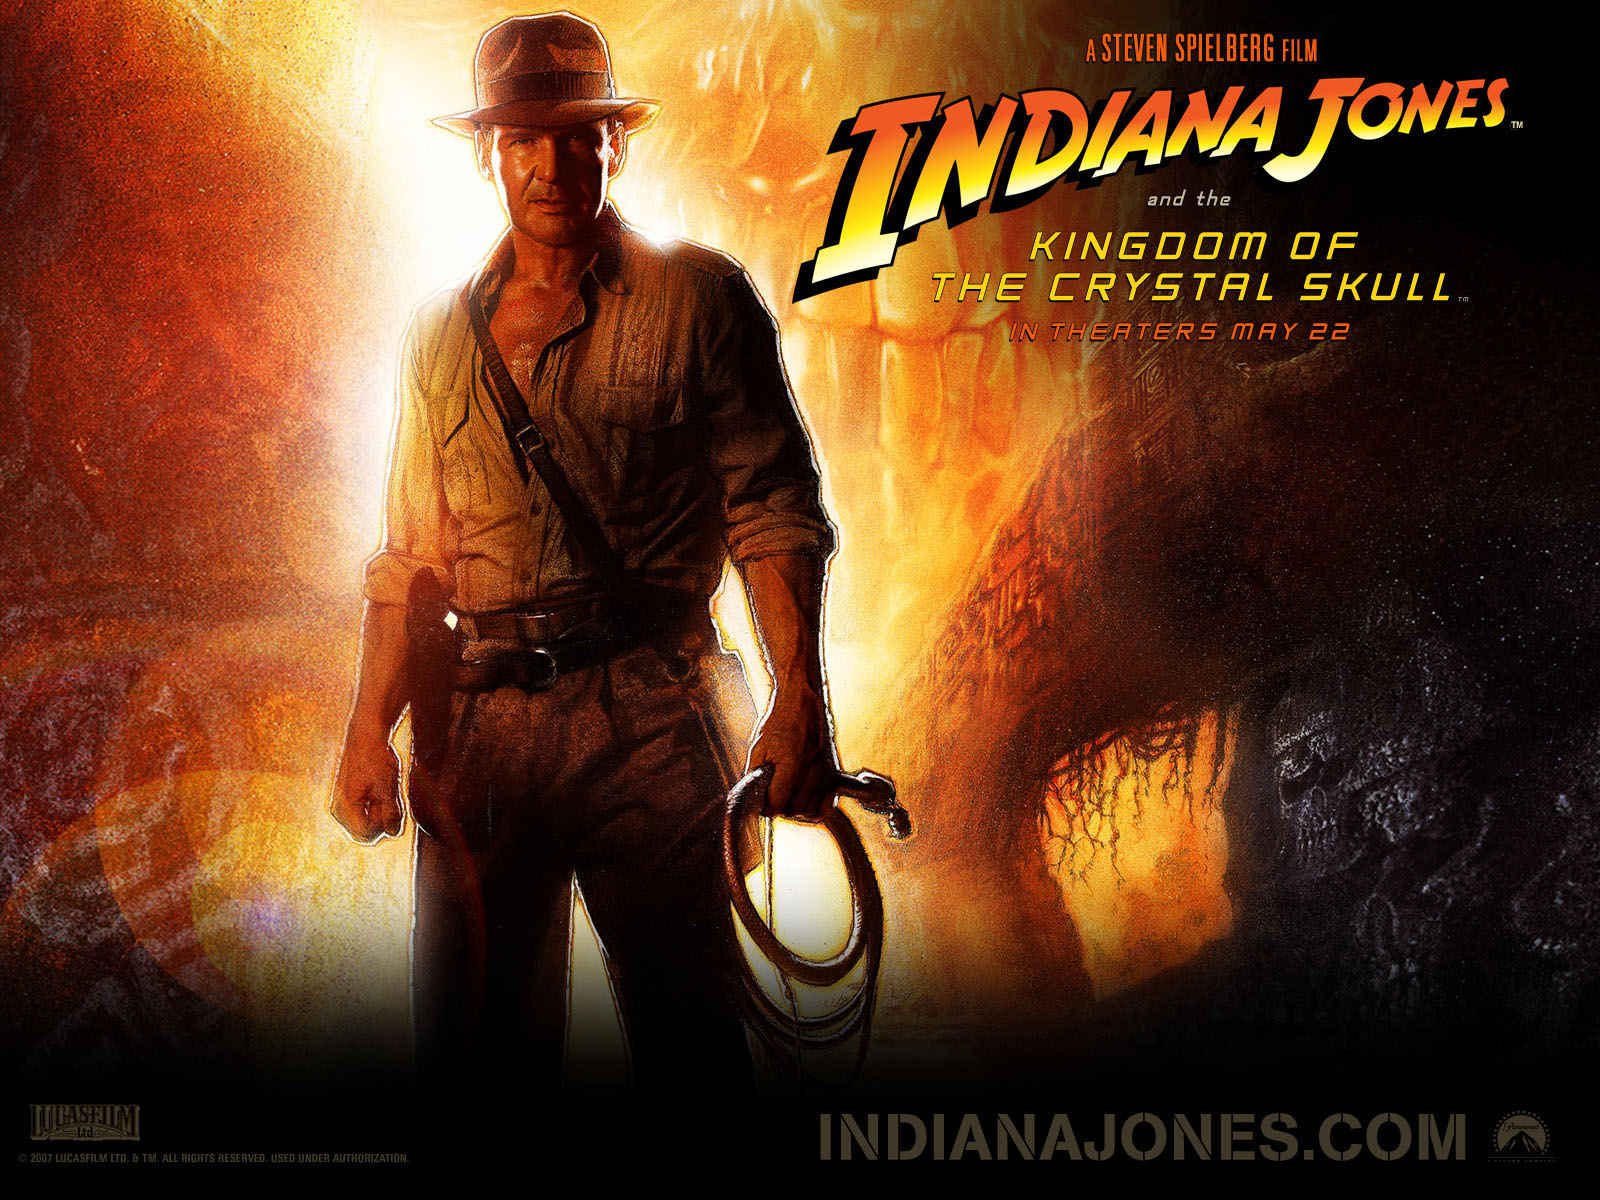 Indiana Jones'un dönüşü 2